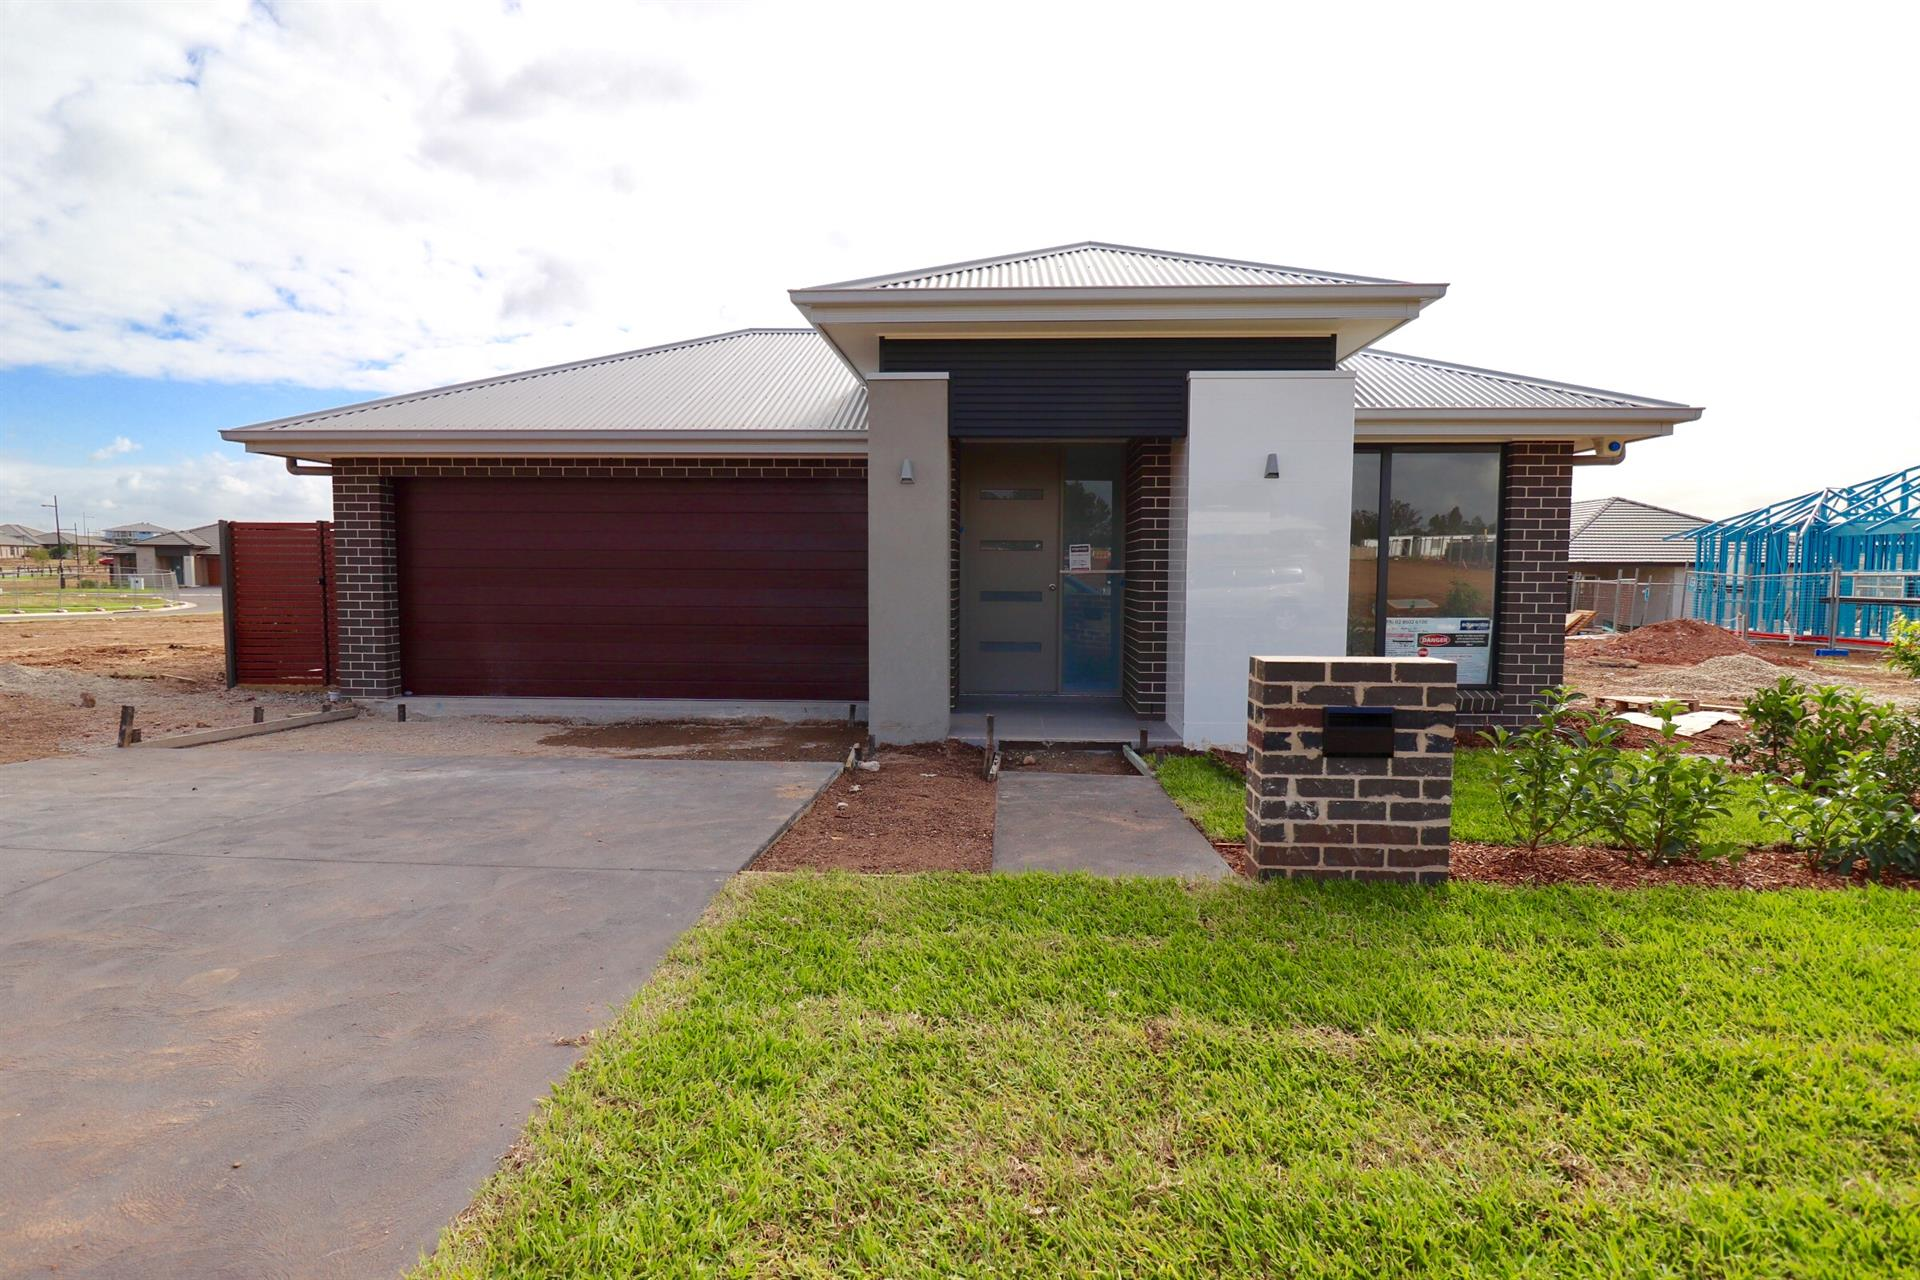 Oran Park, NSW 2570, address available on request